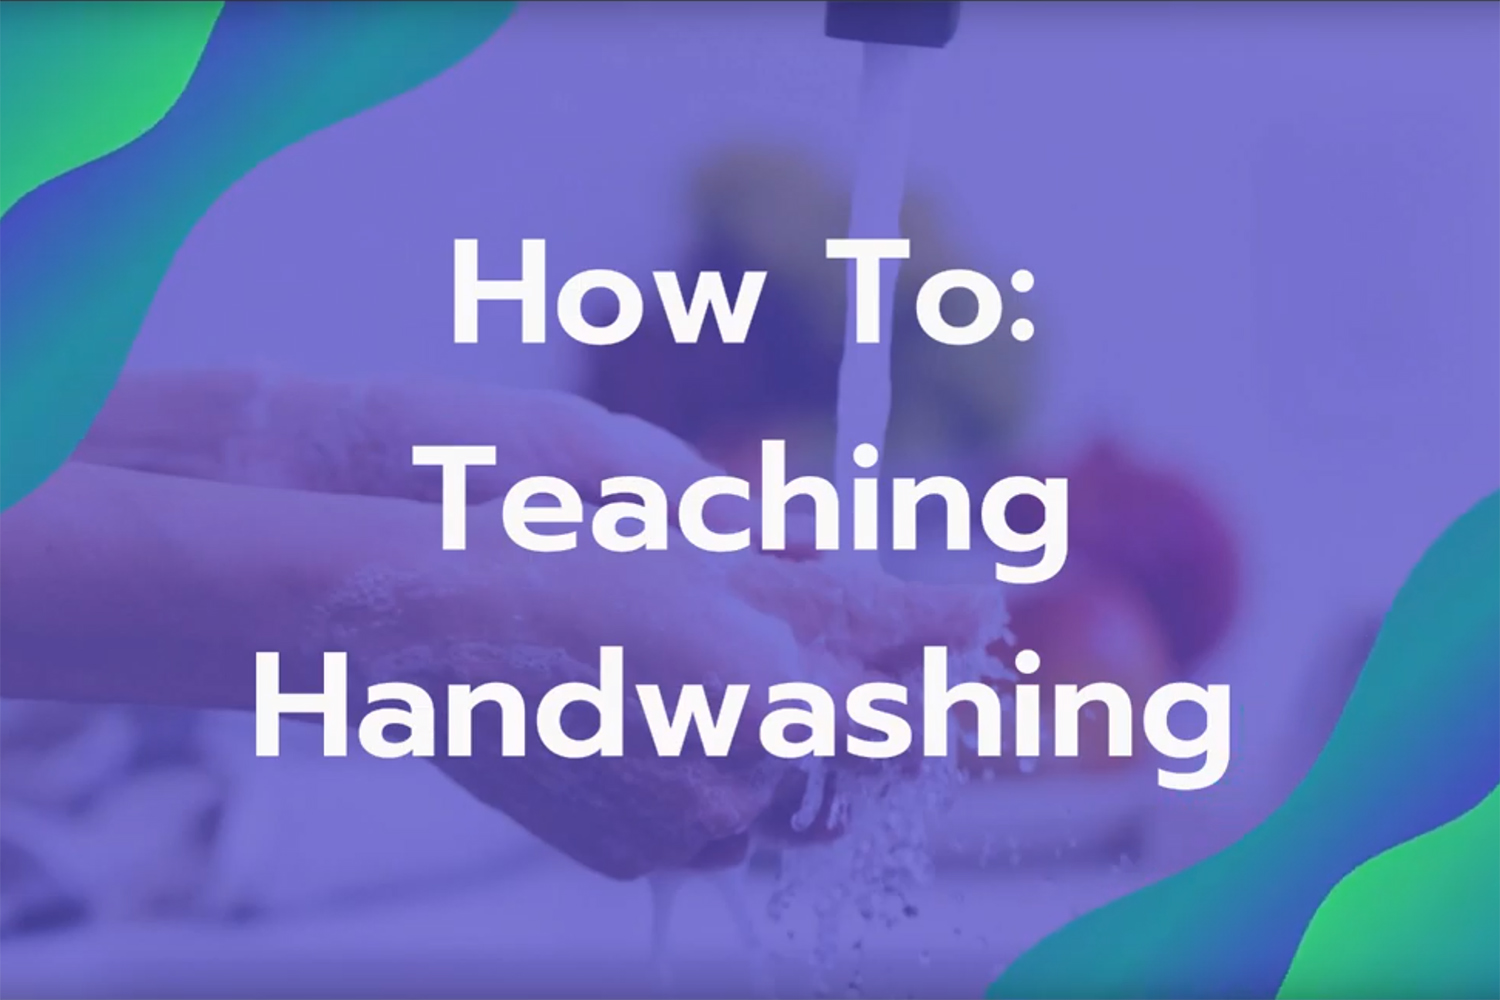 Graphic with hands being washed and the text 'How To: Teaching Handwashing